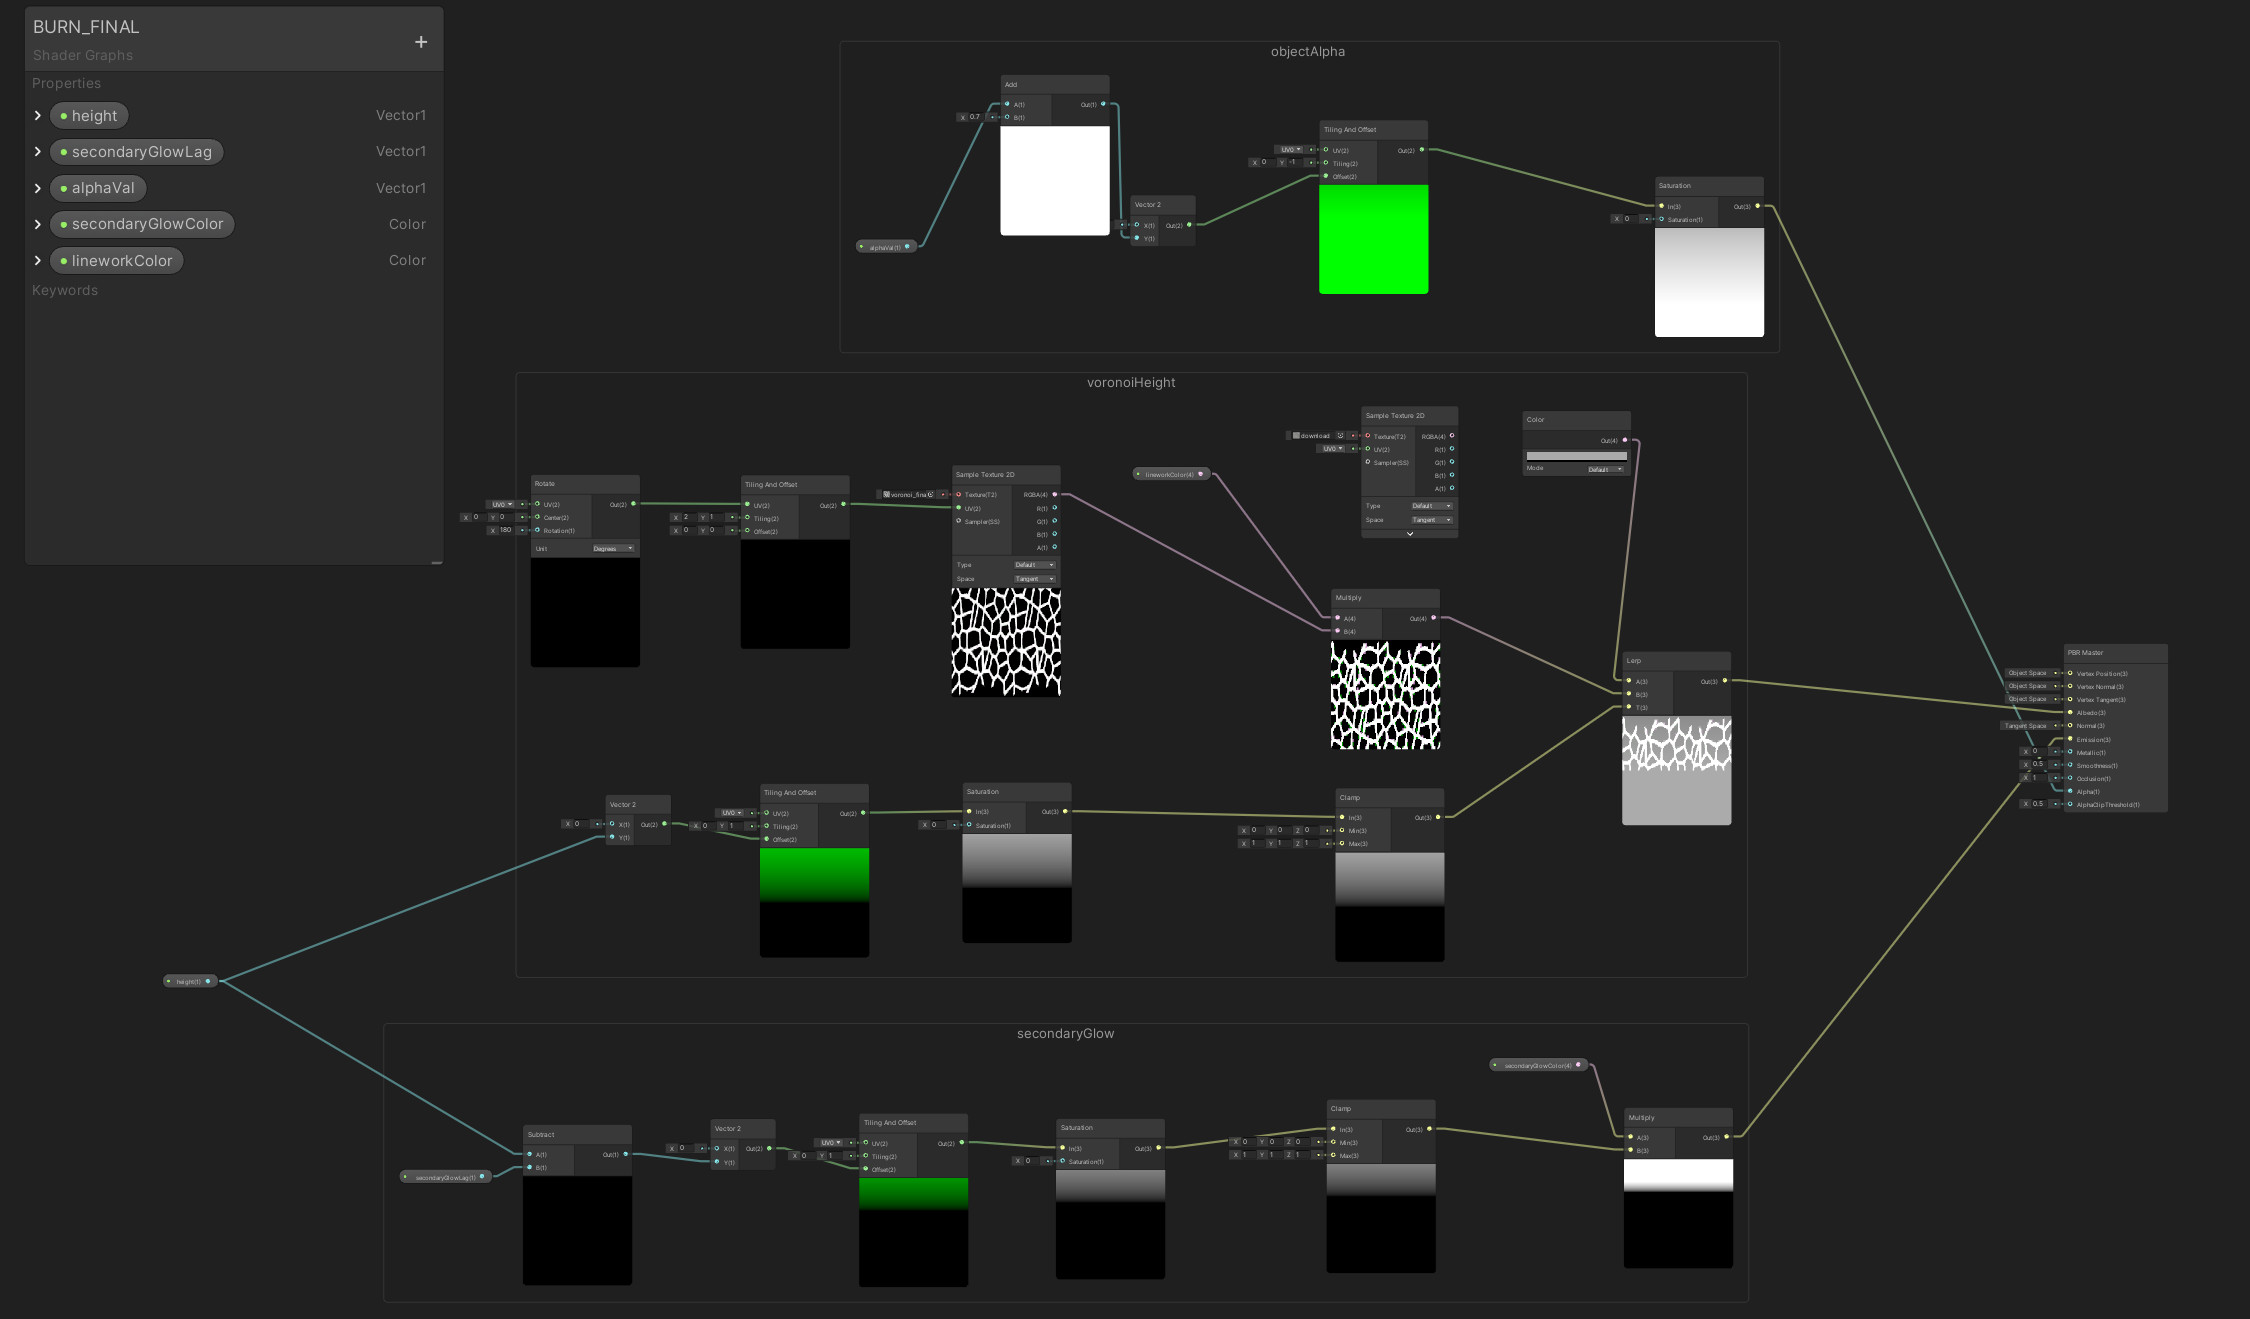 The node network in Unity.